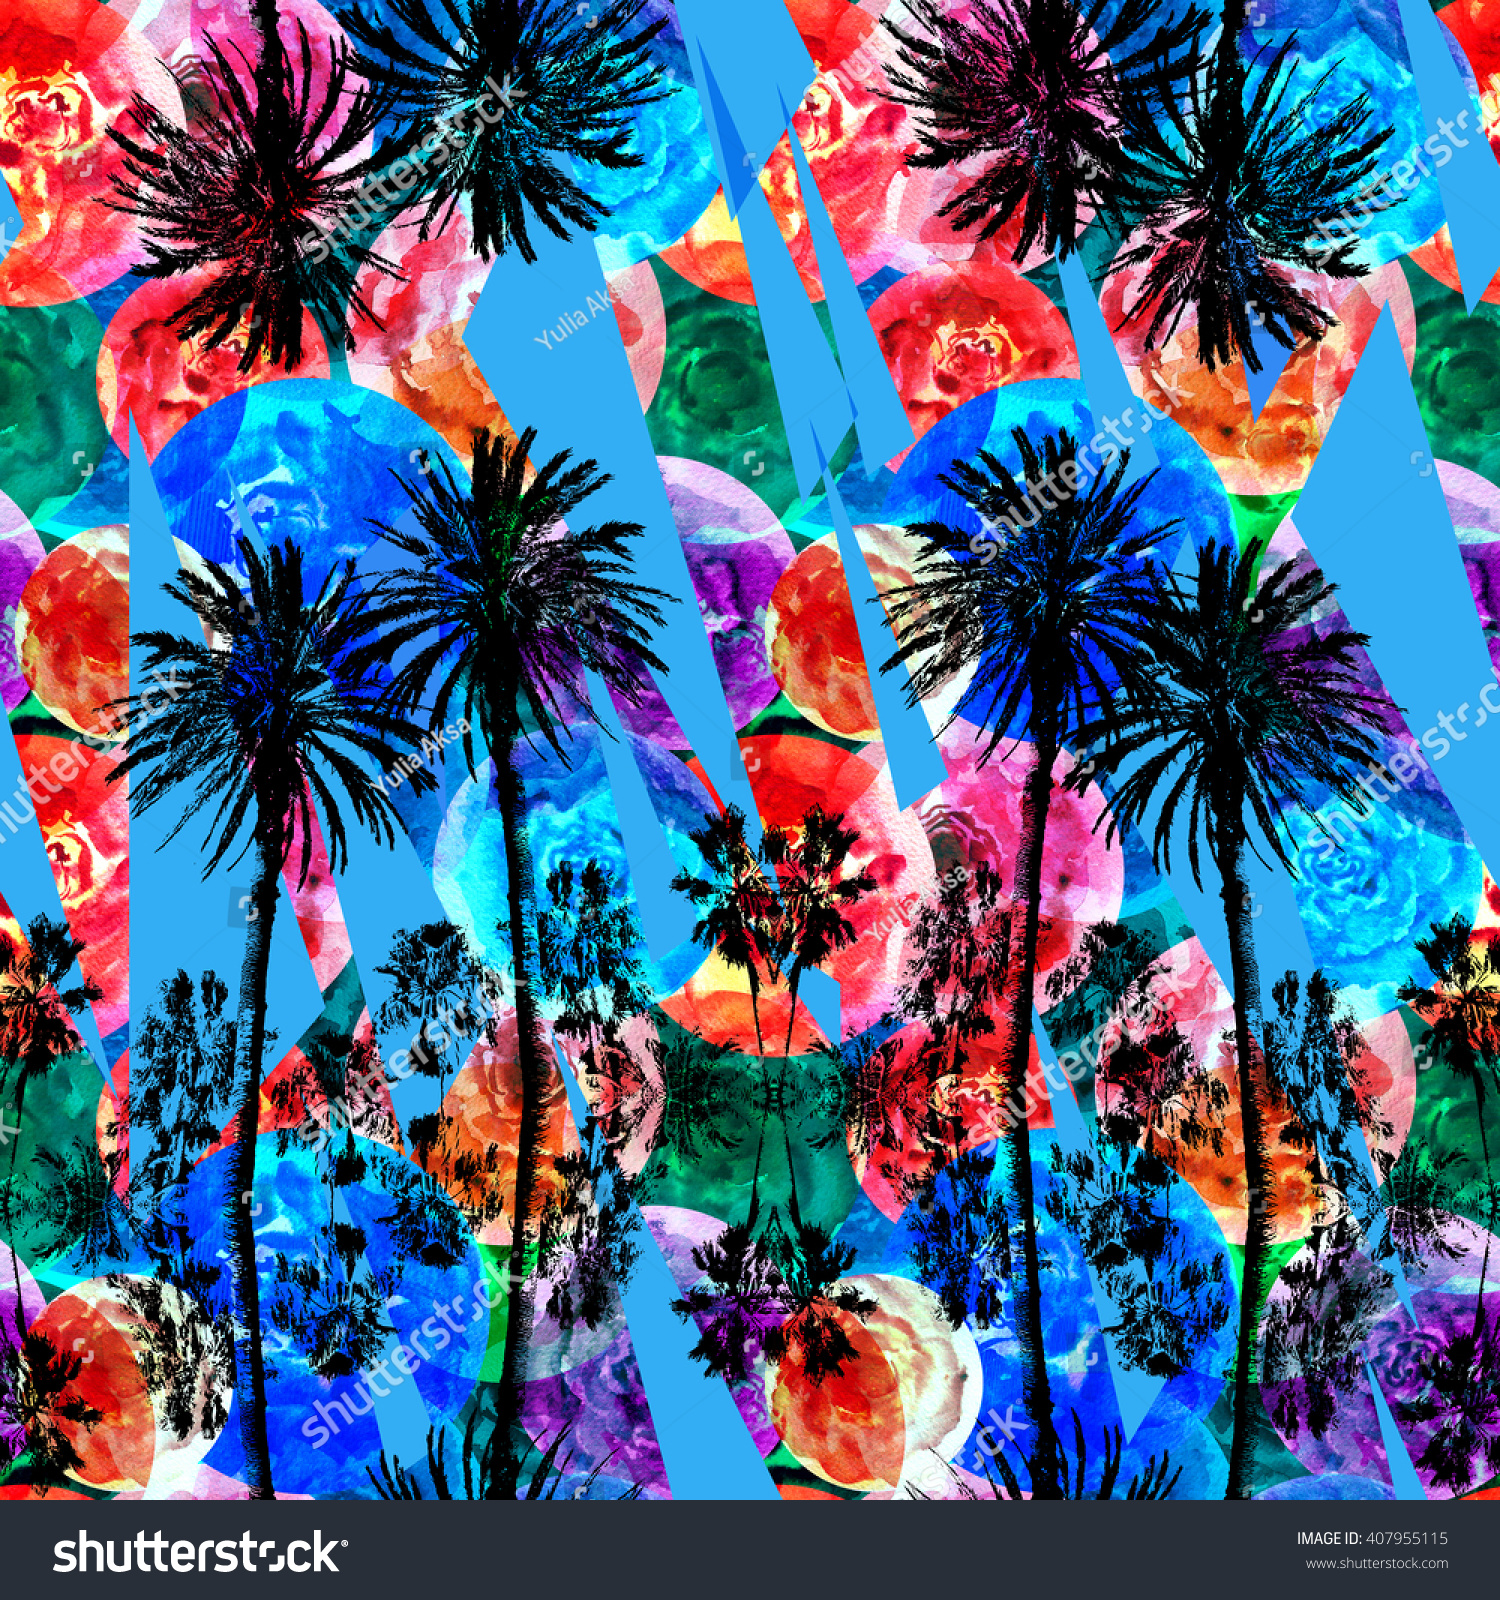 Palm Patterns Tropical Backgrounds Black Silhouette Palm Trees On A